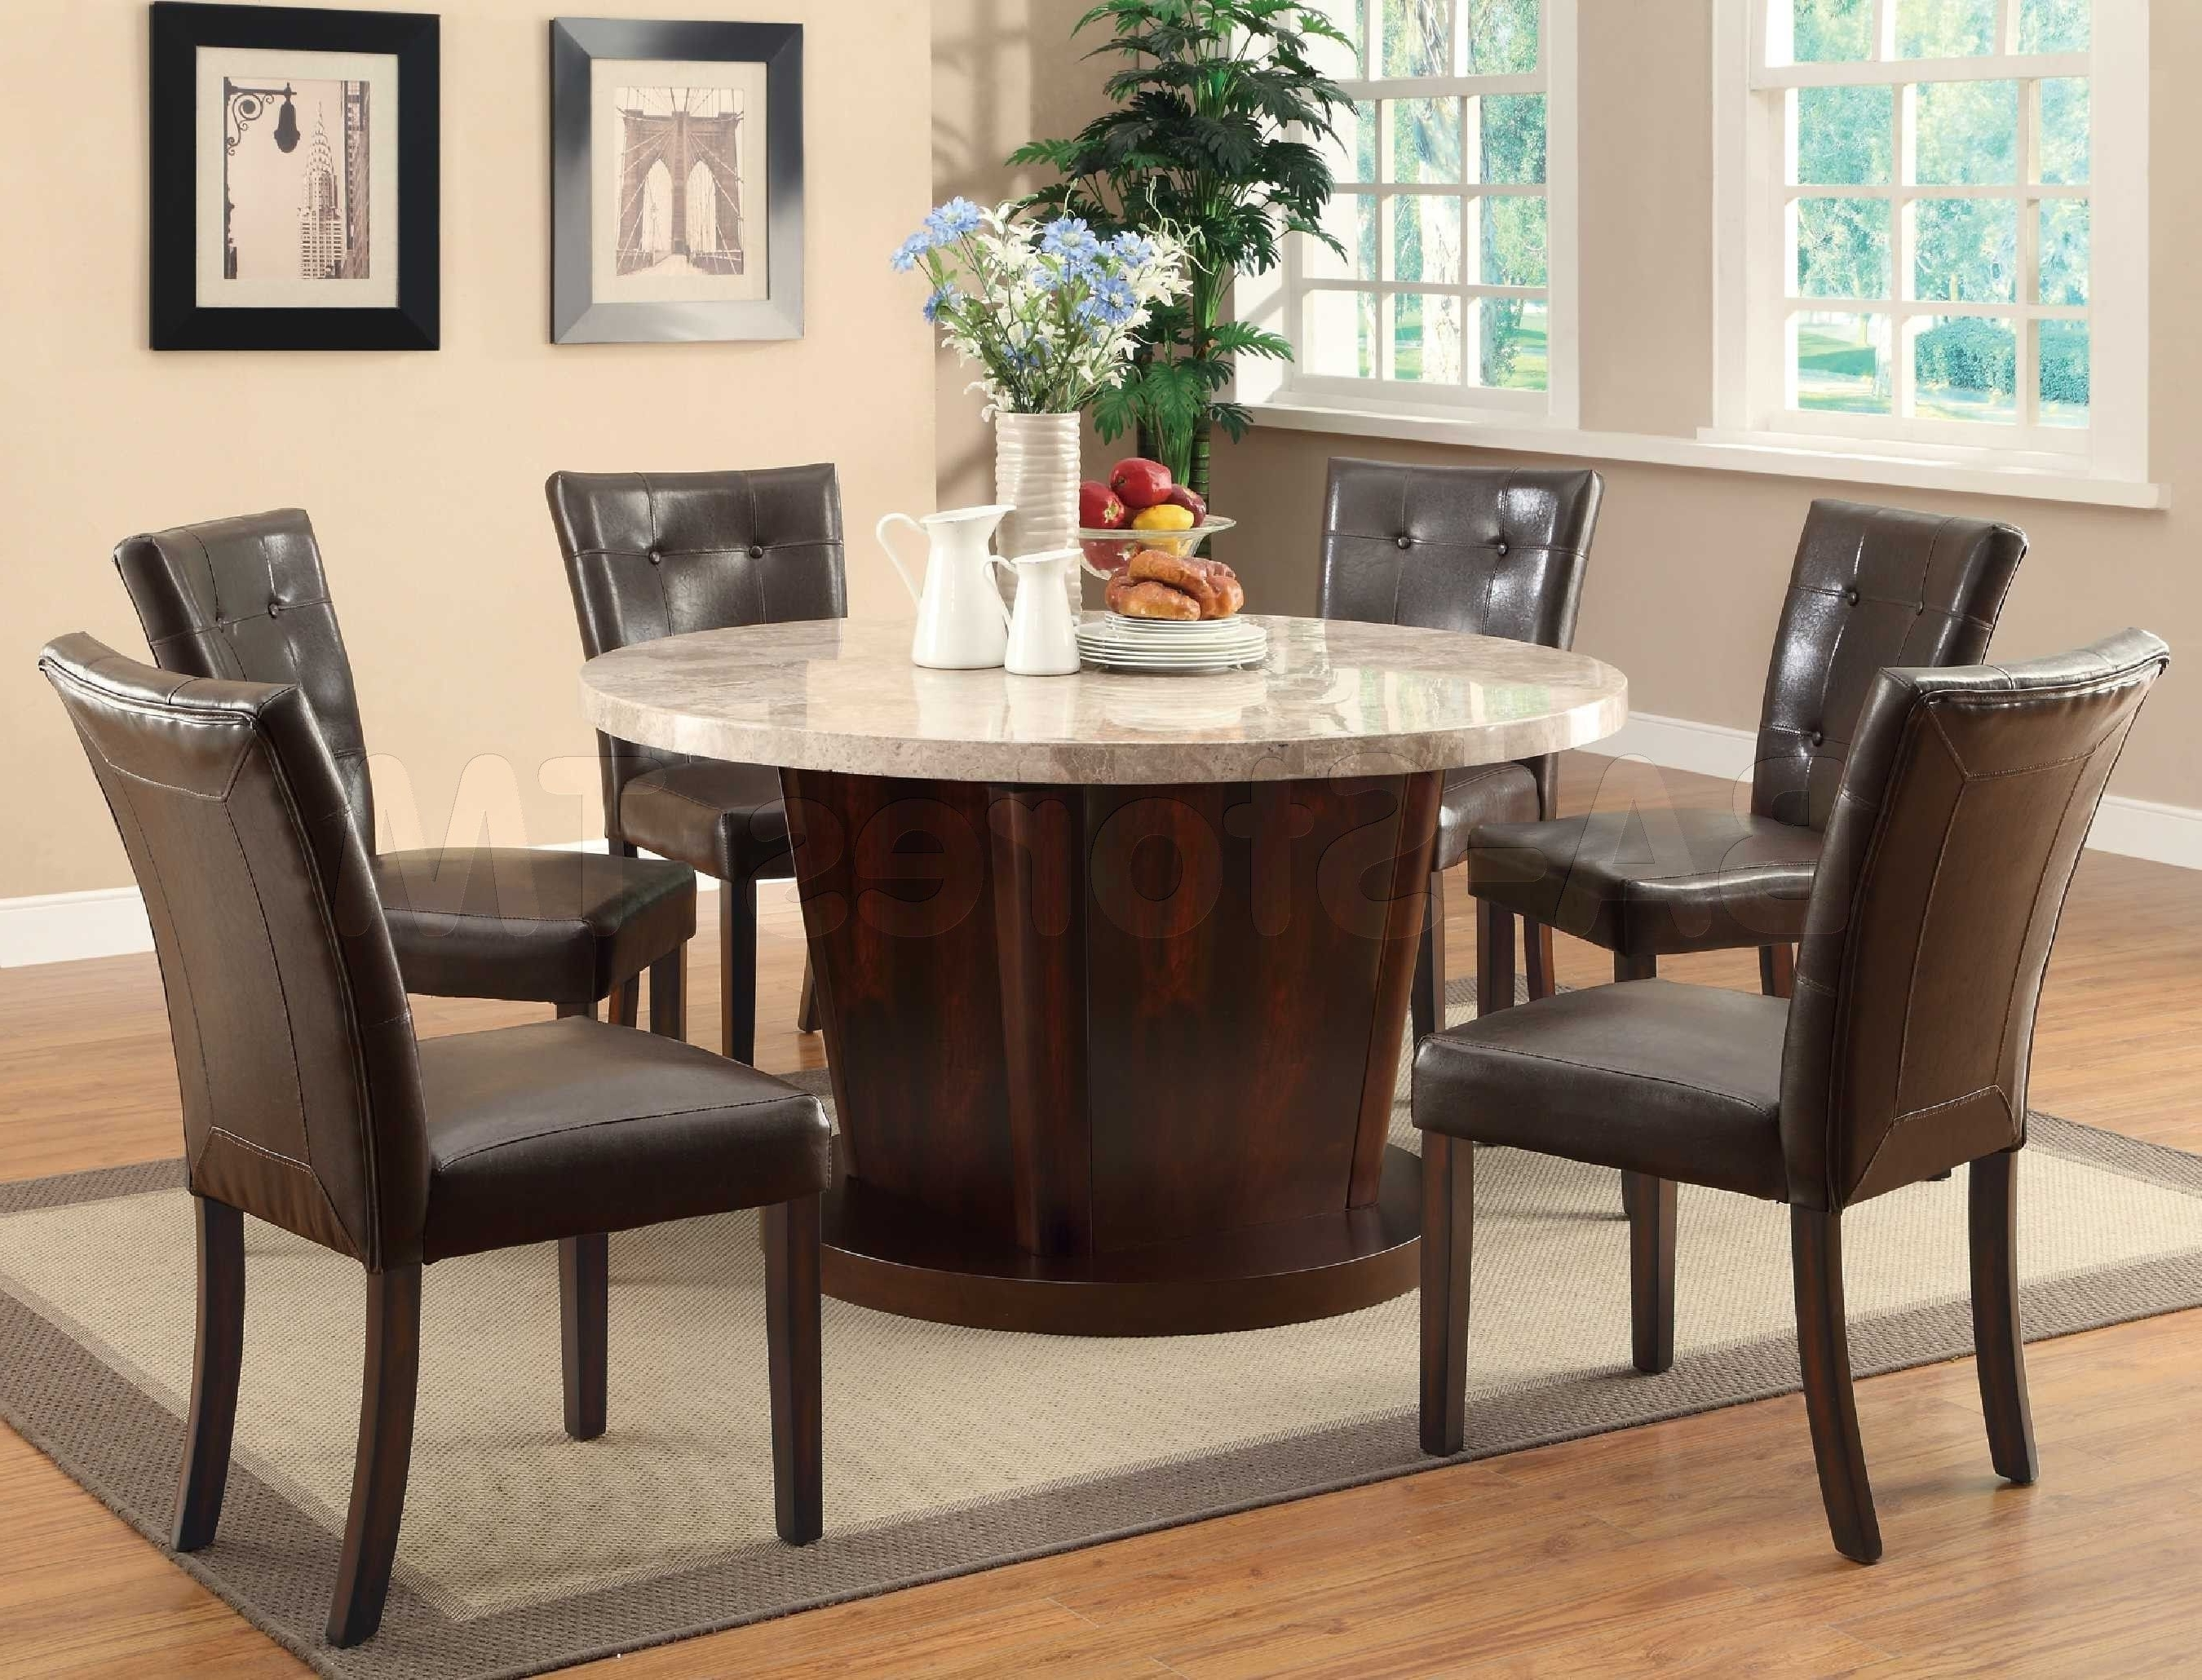 Low Cost Dining Room Tables (View 25 of 25)